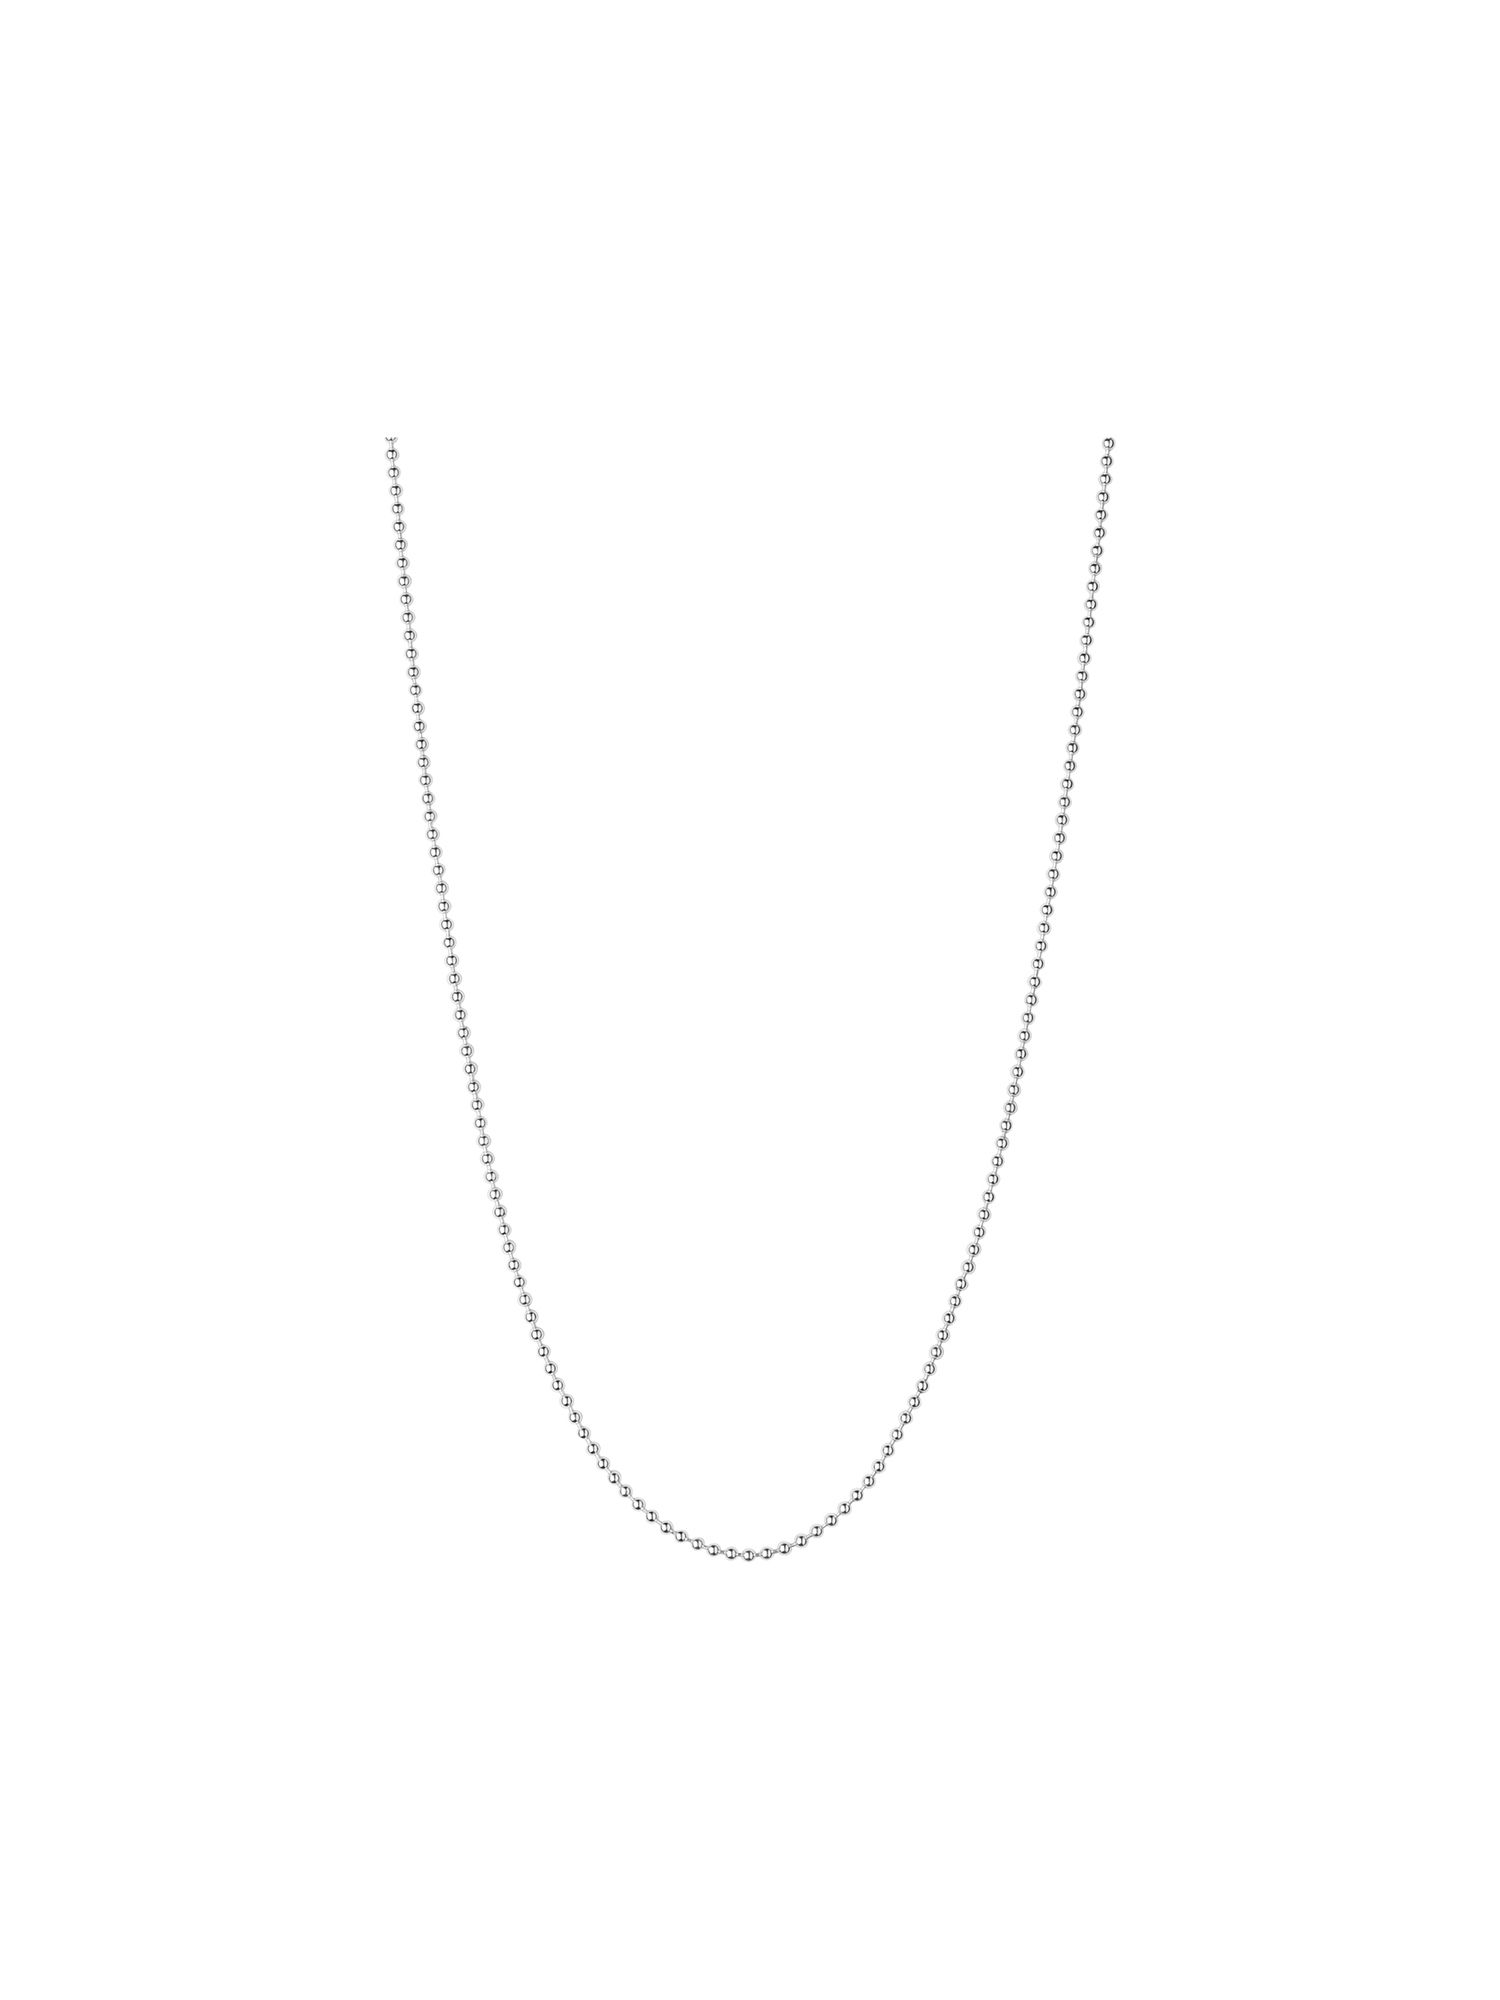 Silver ball chain 2.5mm 50cm